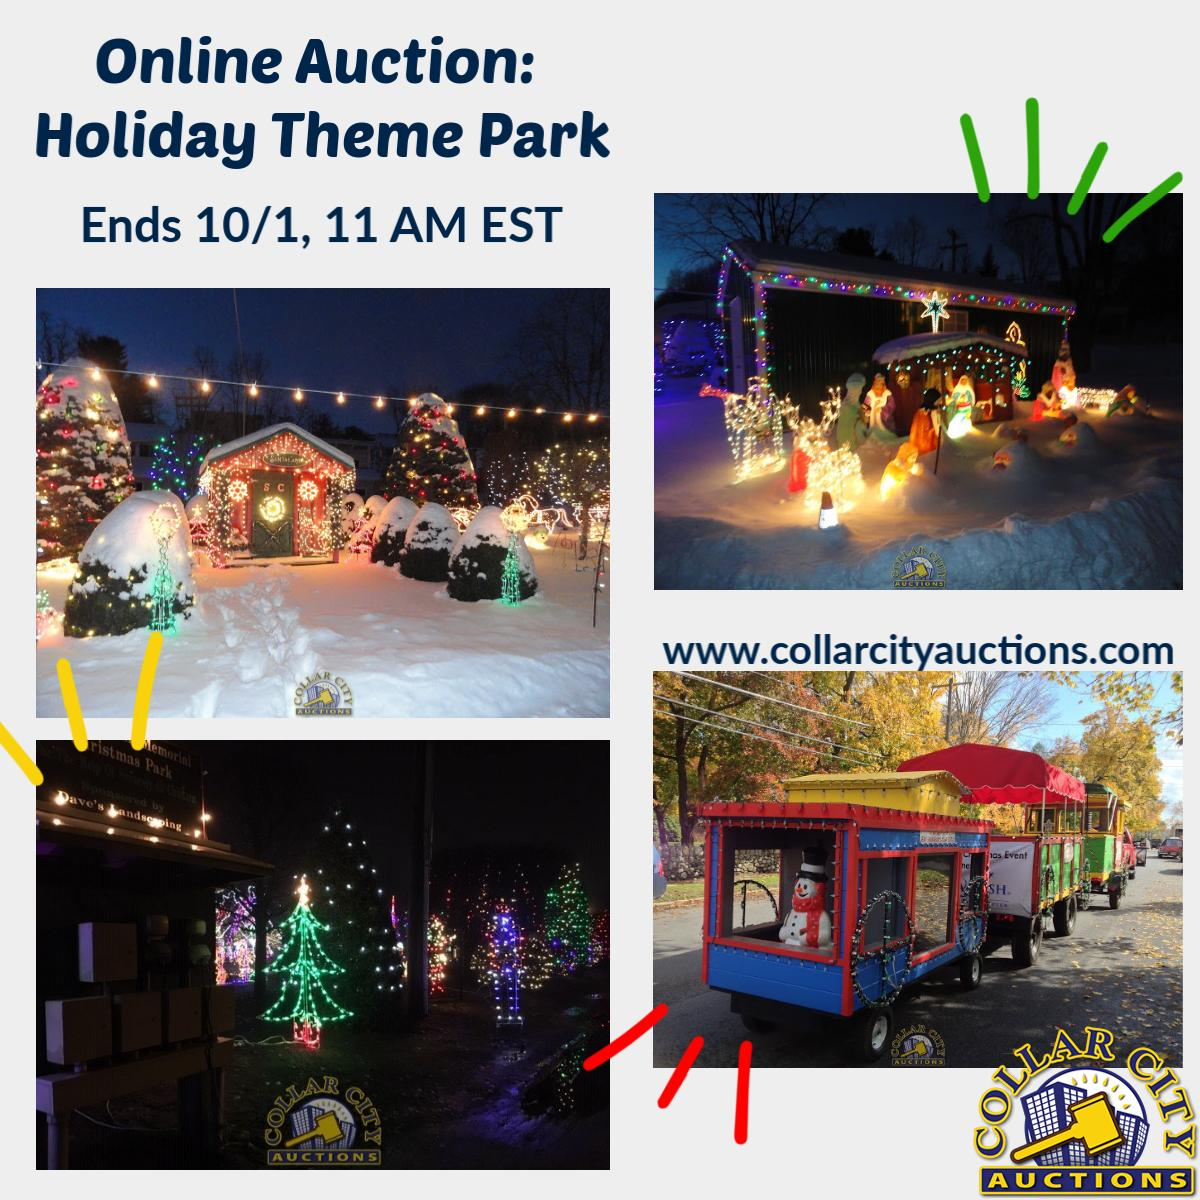 Collarcityauctions On Twitter Holiday Theme Park 71 Lyon Street Amsterdam Ny 12010 Montgomery County Once In A Lifetime Business Opportunity Currently Being Used As An Extraordinary Christmas Village For Additional Information Visit